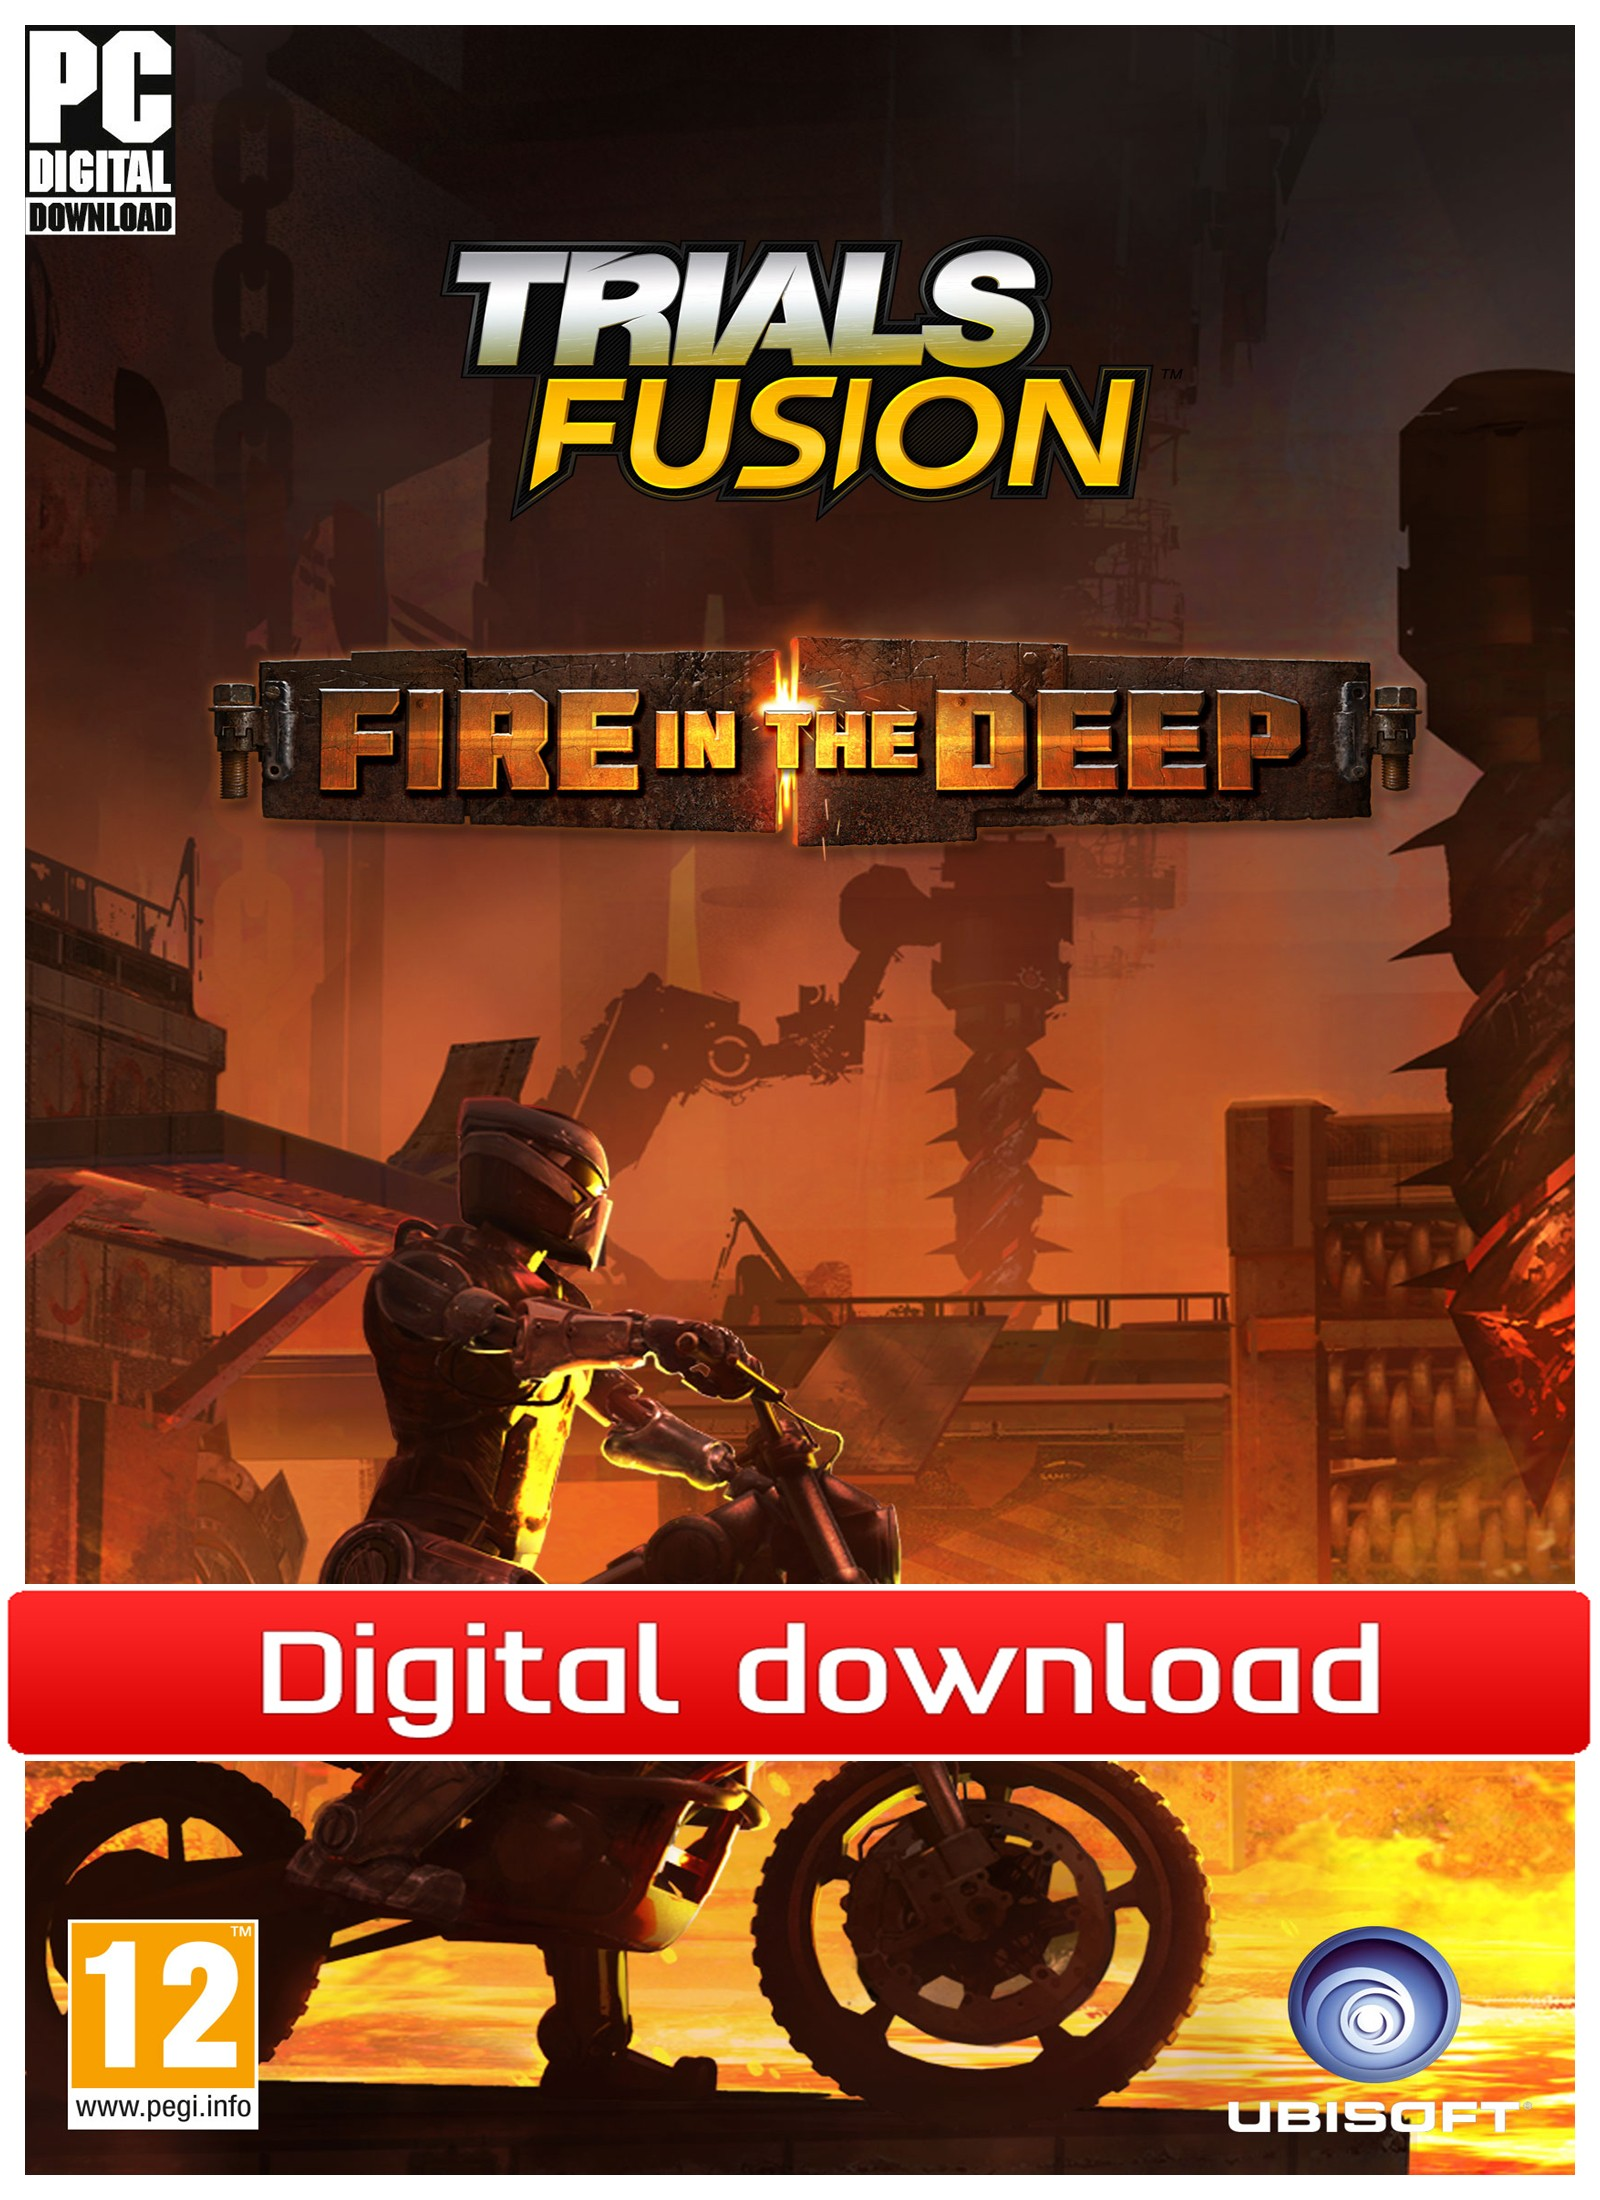 36744 : Trials Fusion: Fire in the Deep (PC nedlastning)